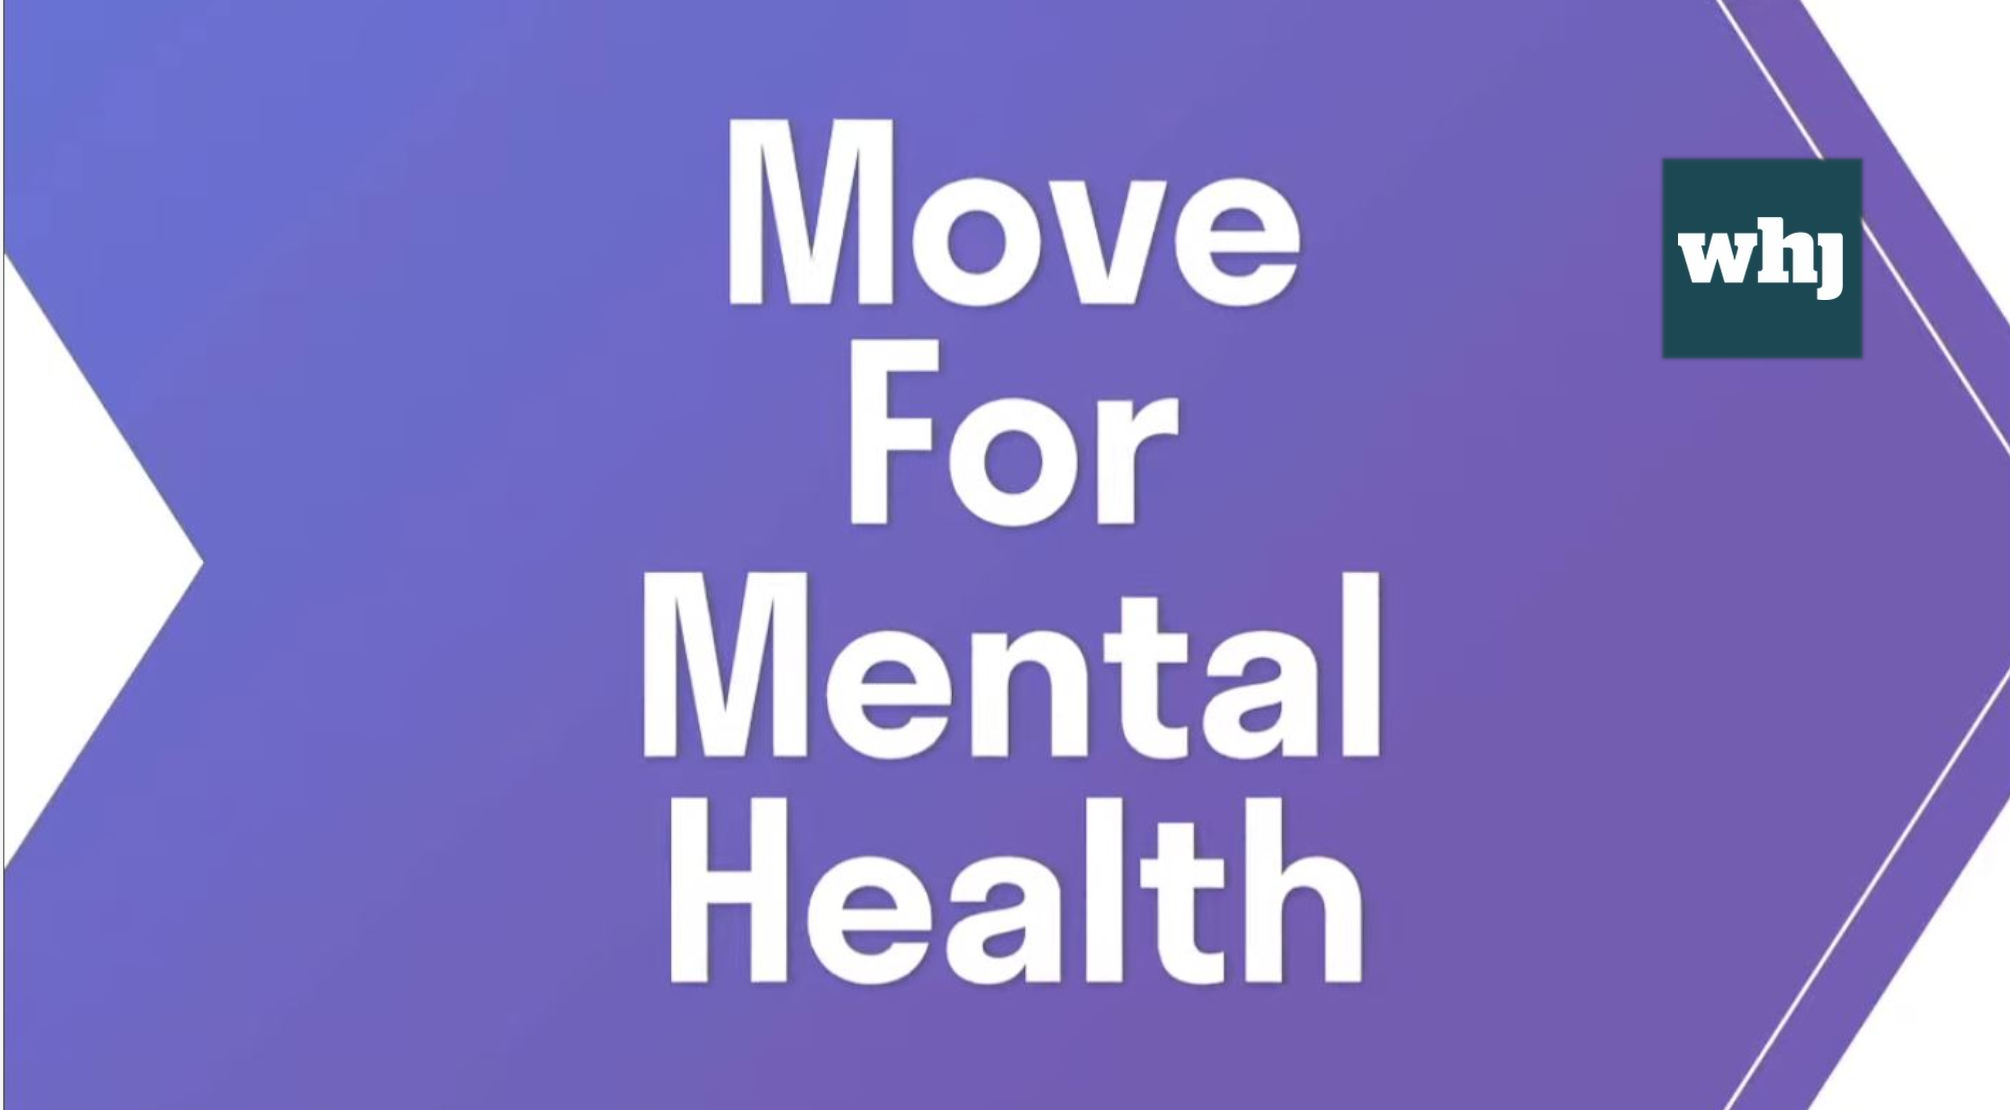 World Mental Health Day - WHO hosts online event to promote mental health support